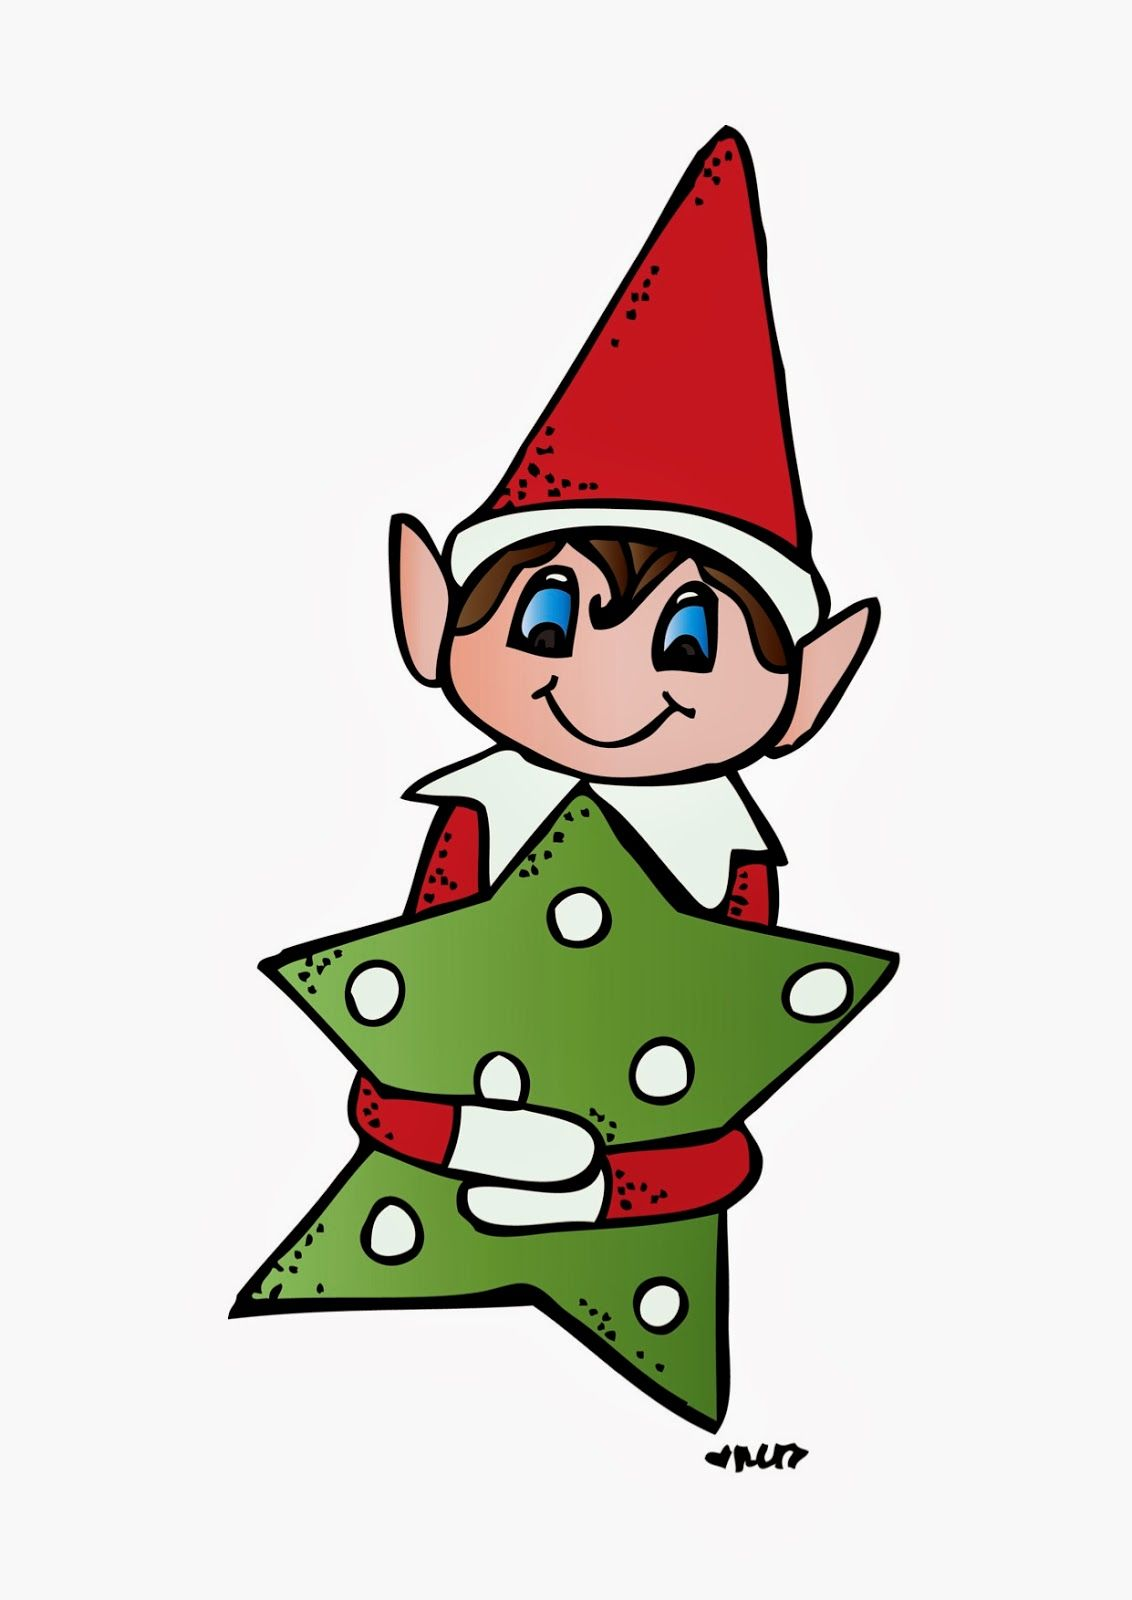 classroom fun elf on the shelf kindergarten christmas pinterest rh pinterest com elf on the shelf girl clip art elf on the shelf clip art black and white